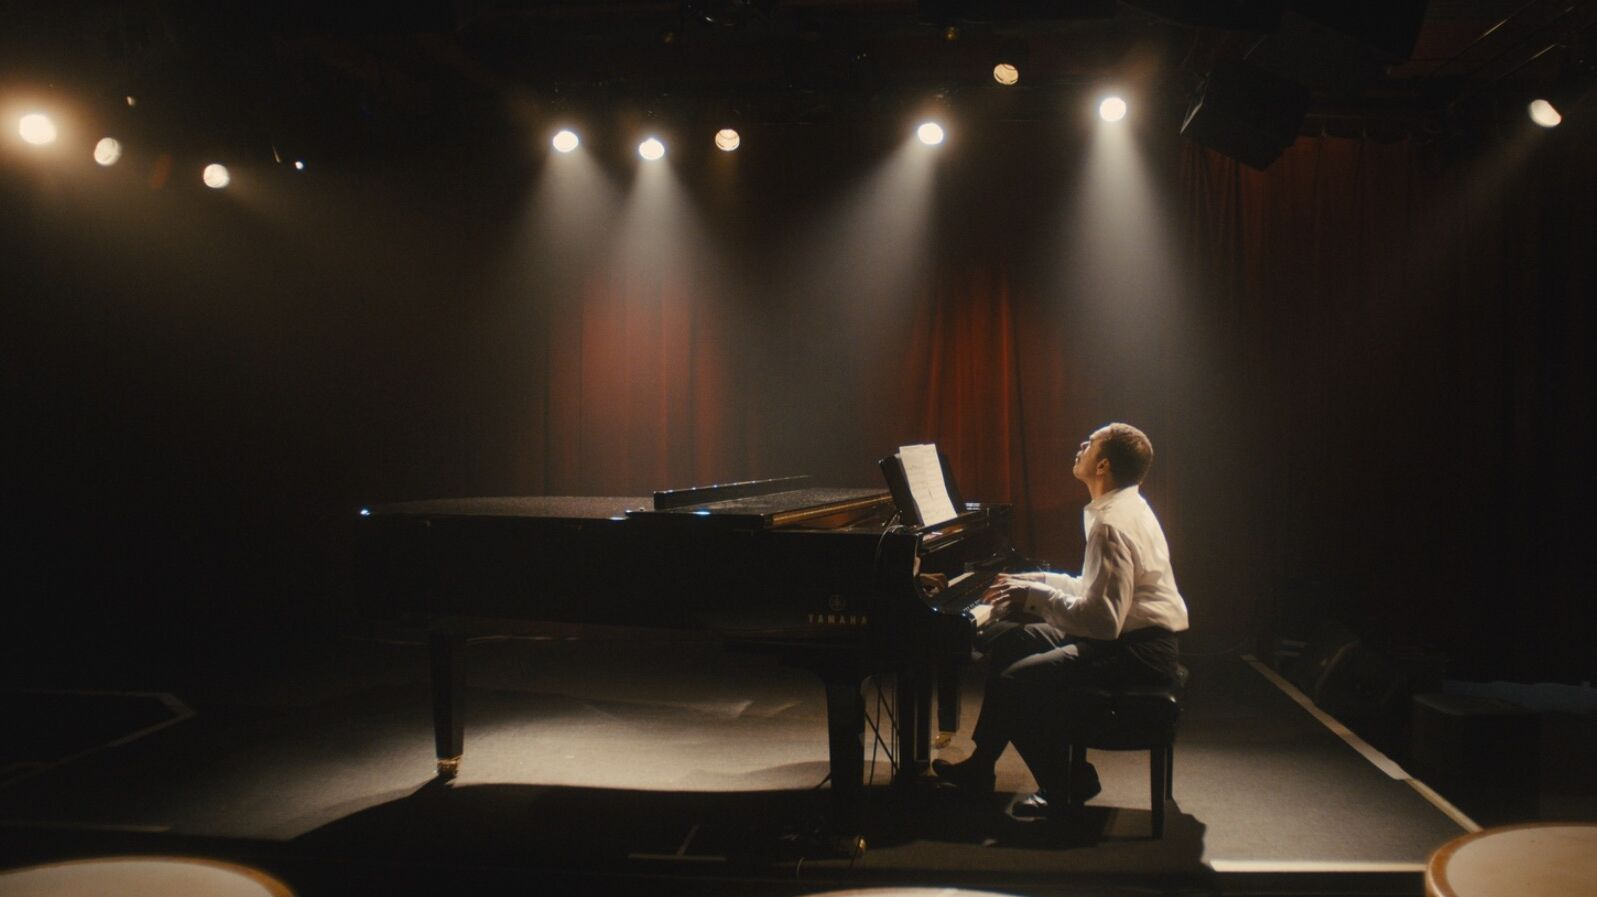 A black man plays a grand piano on a dramatically lit small stage with red curtains in background